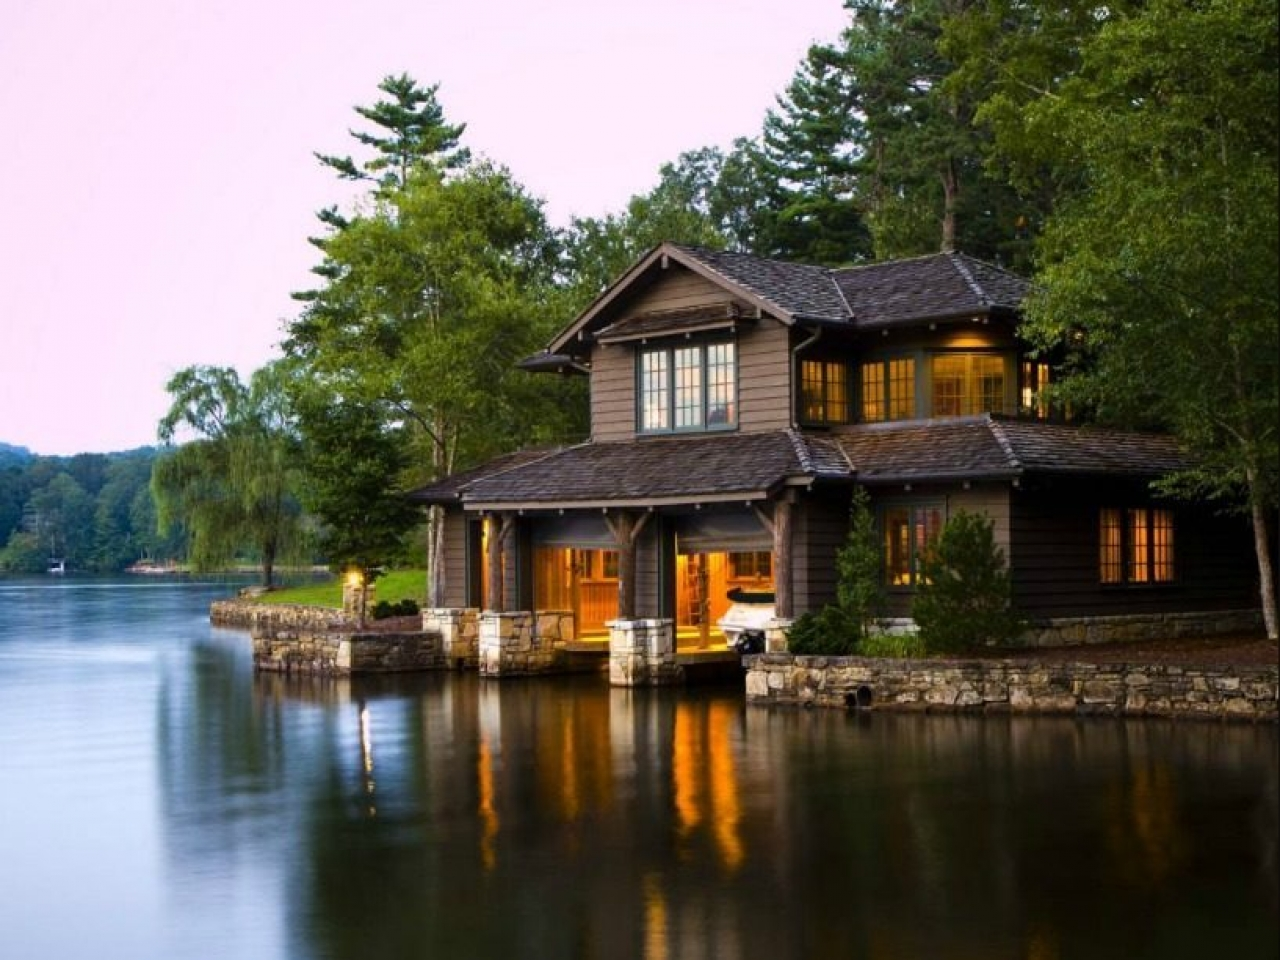 By the Lake House Lake Cabin House, luxury lakefront house plans - Treesranch.com